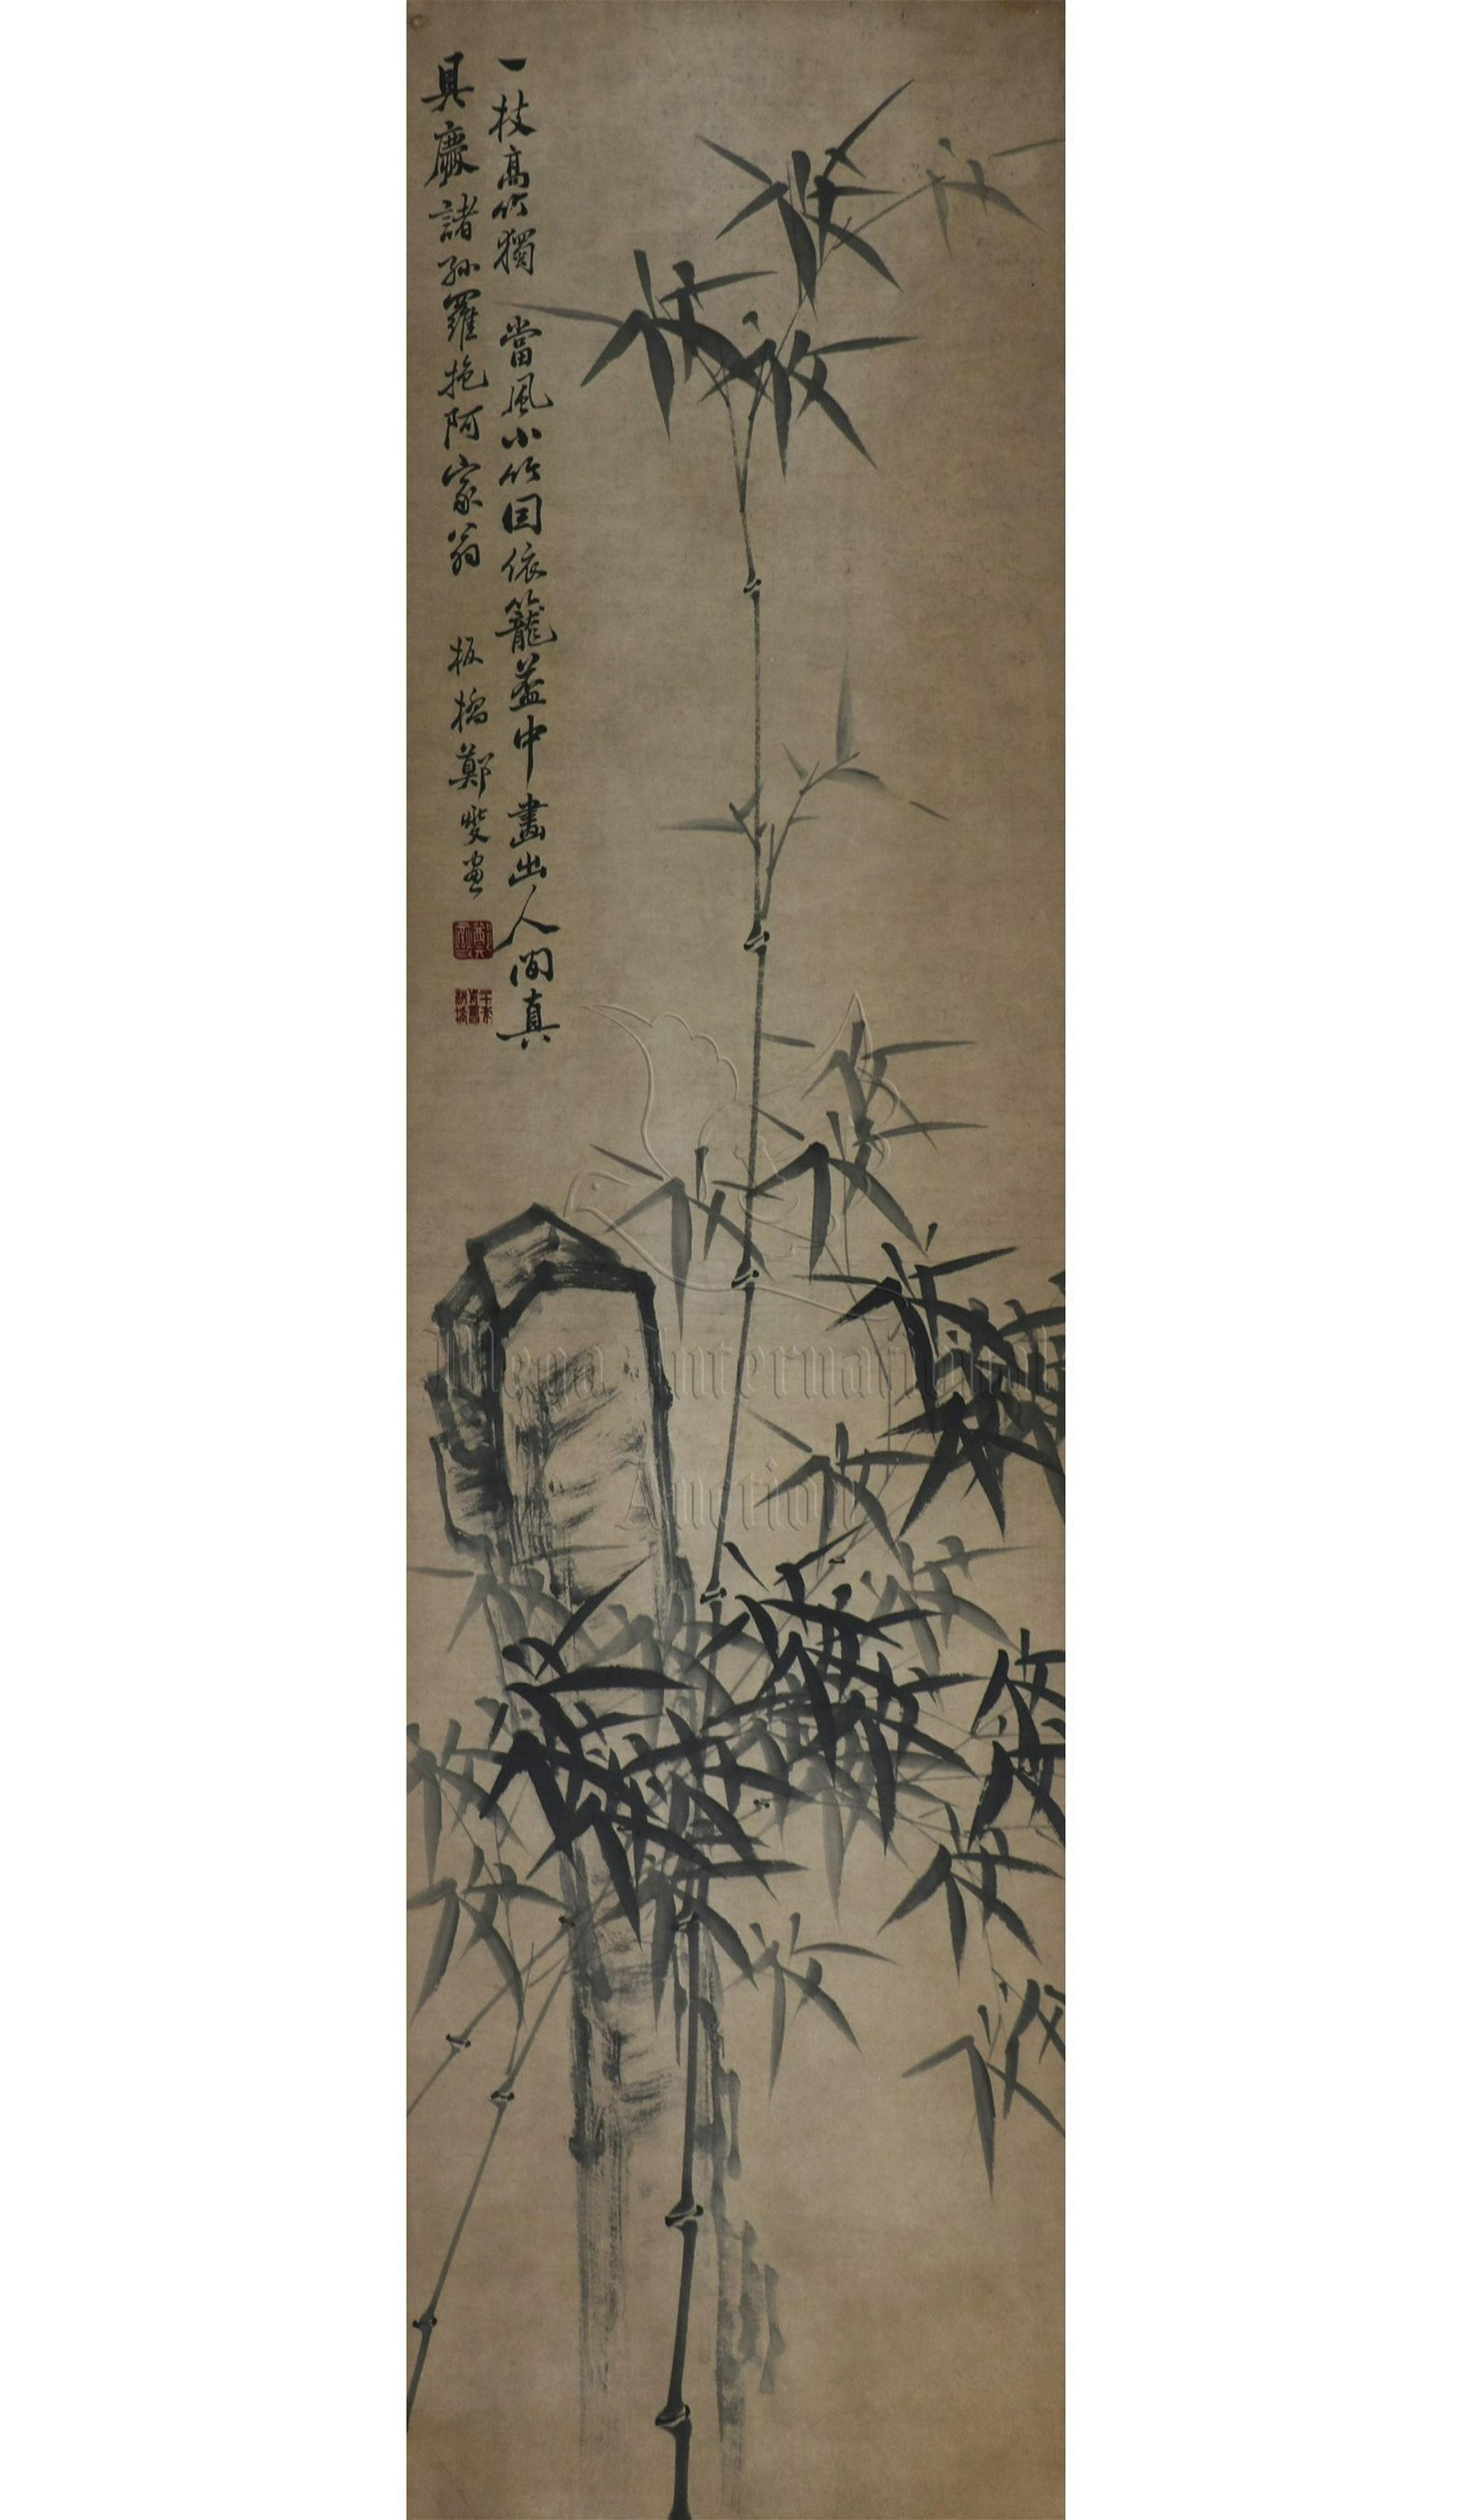 ZHENG BANQIAO: INK ON PAPER PAINTING